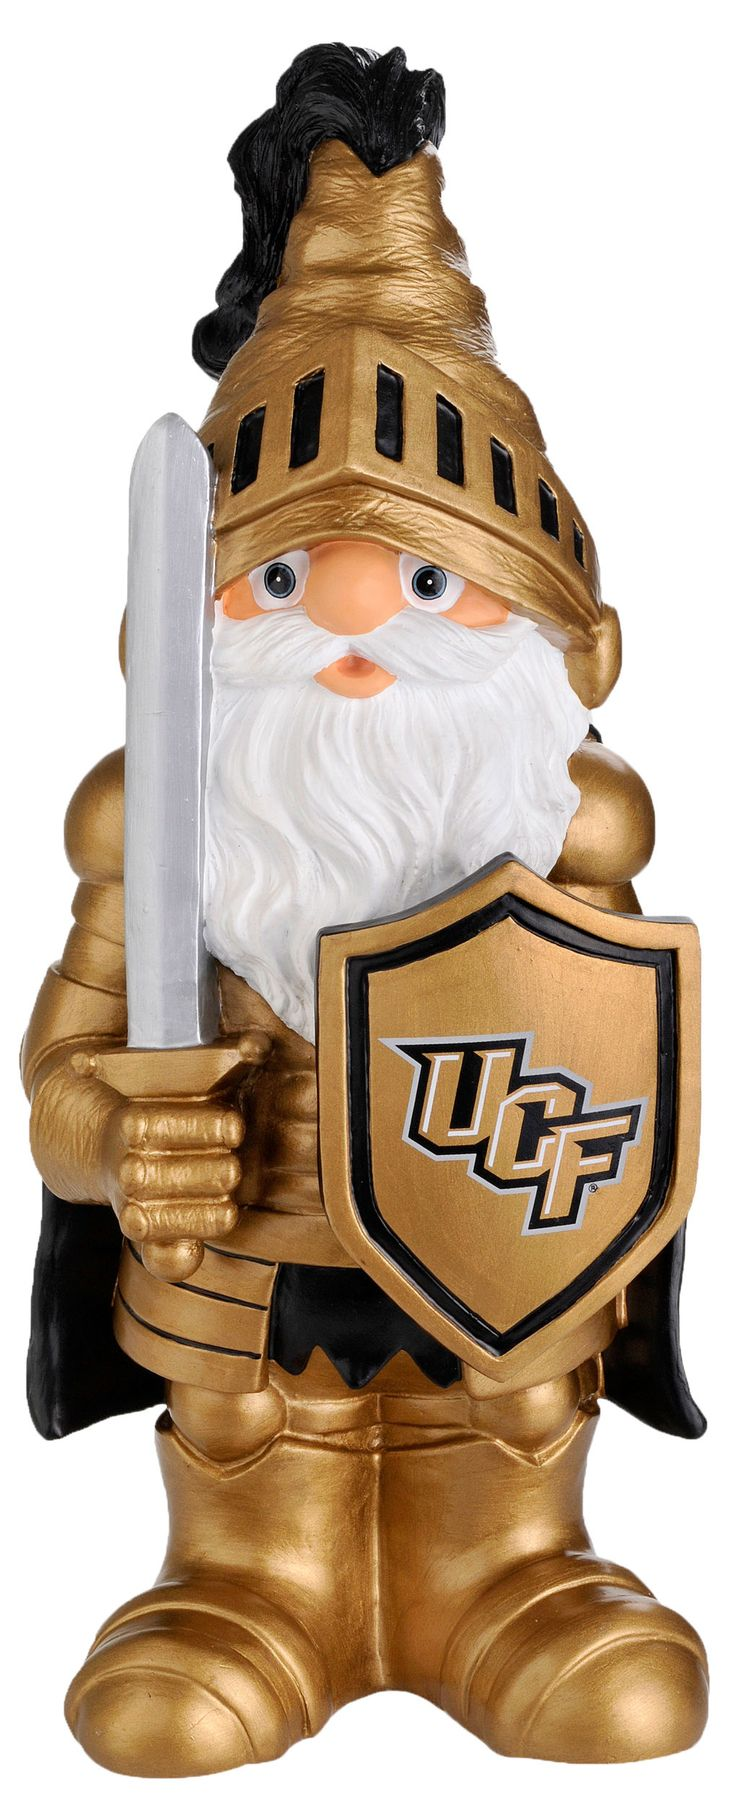 university of central florida essay best images about ucf duke  17 best images about university of central florida ucf on ucf garden gnome goknights ucf freshman admissions essay